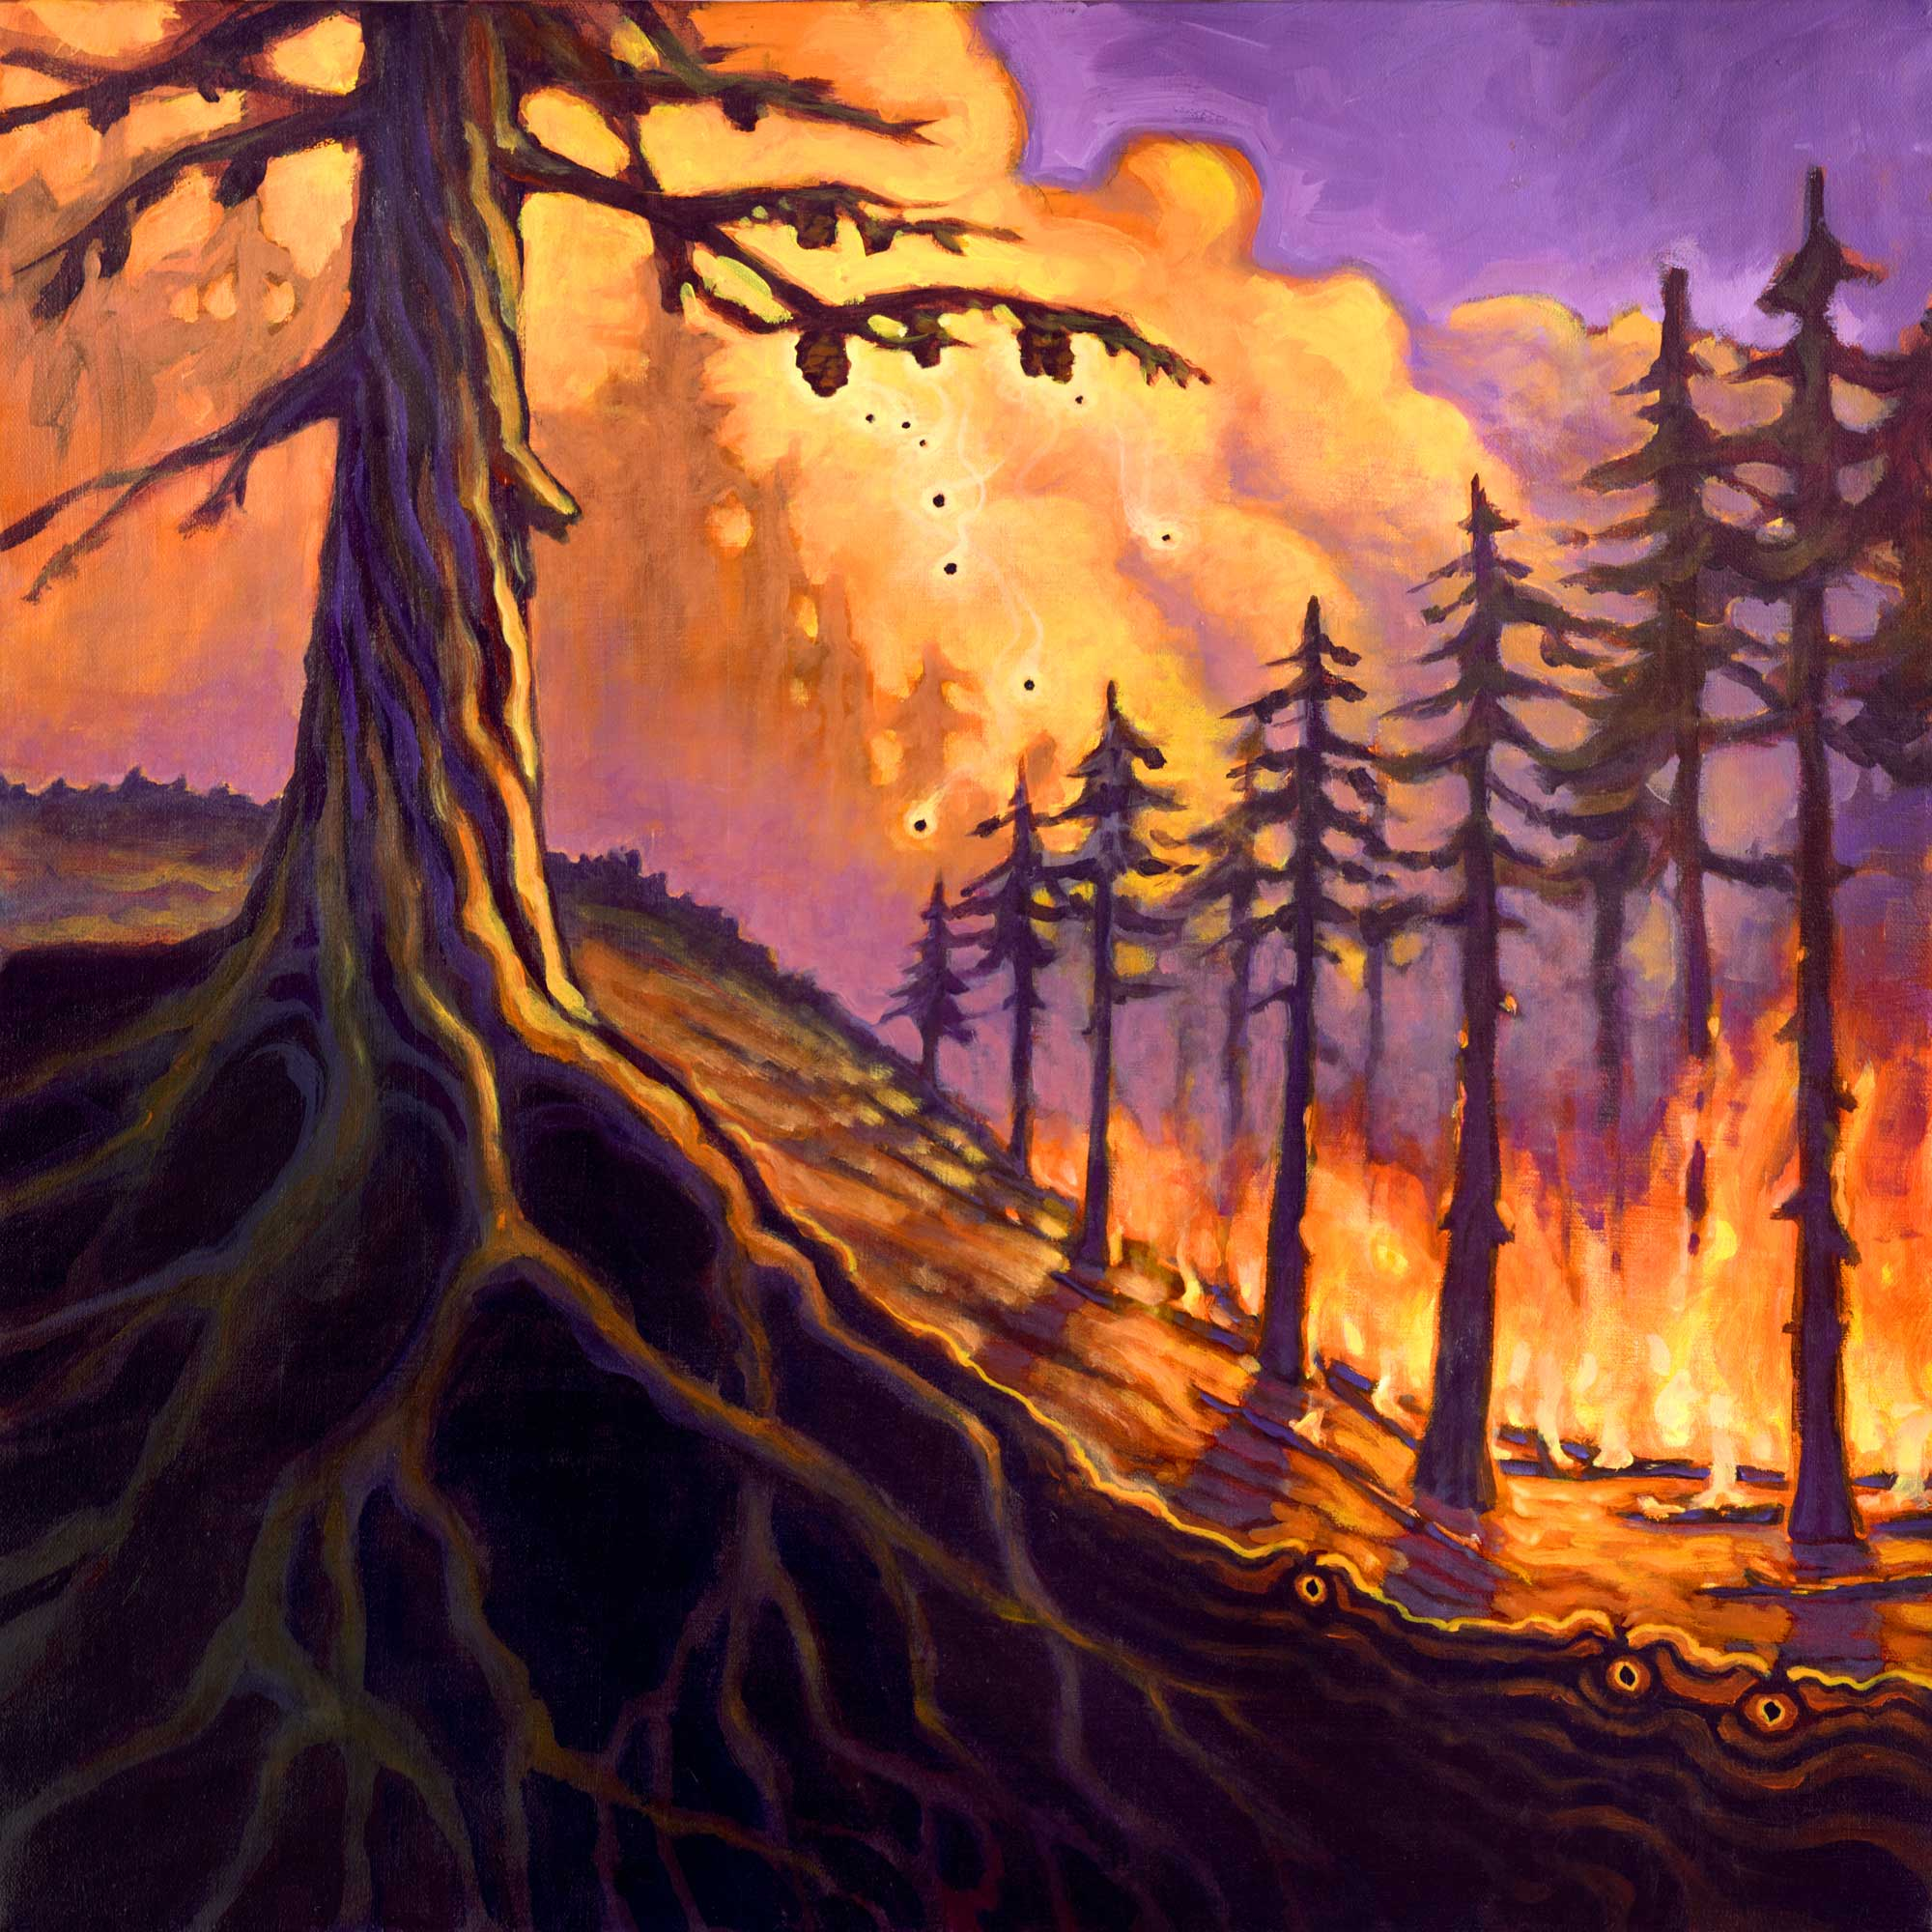 Painting of a wildfire burning a forest and causing a tree to release it's seeds